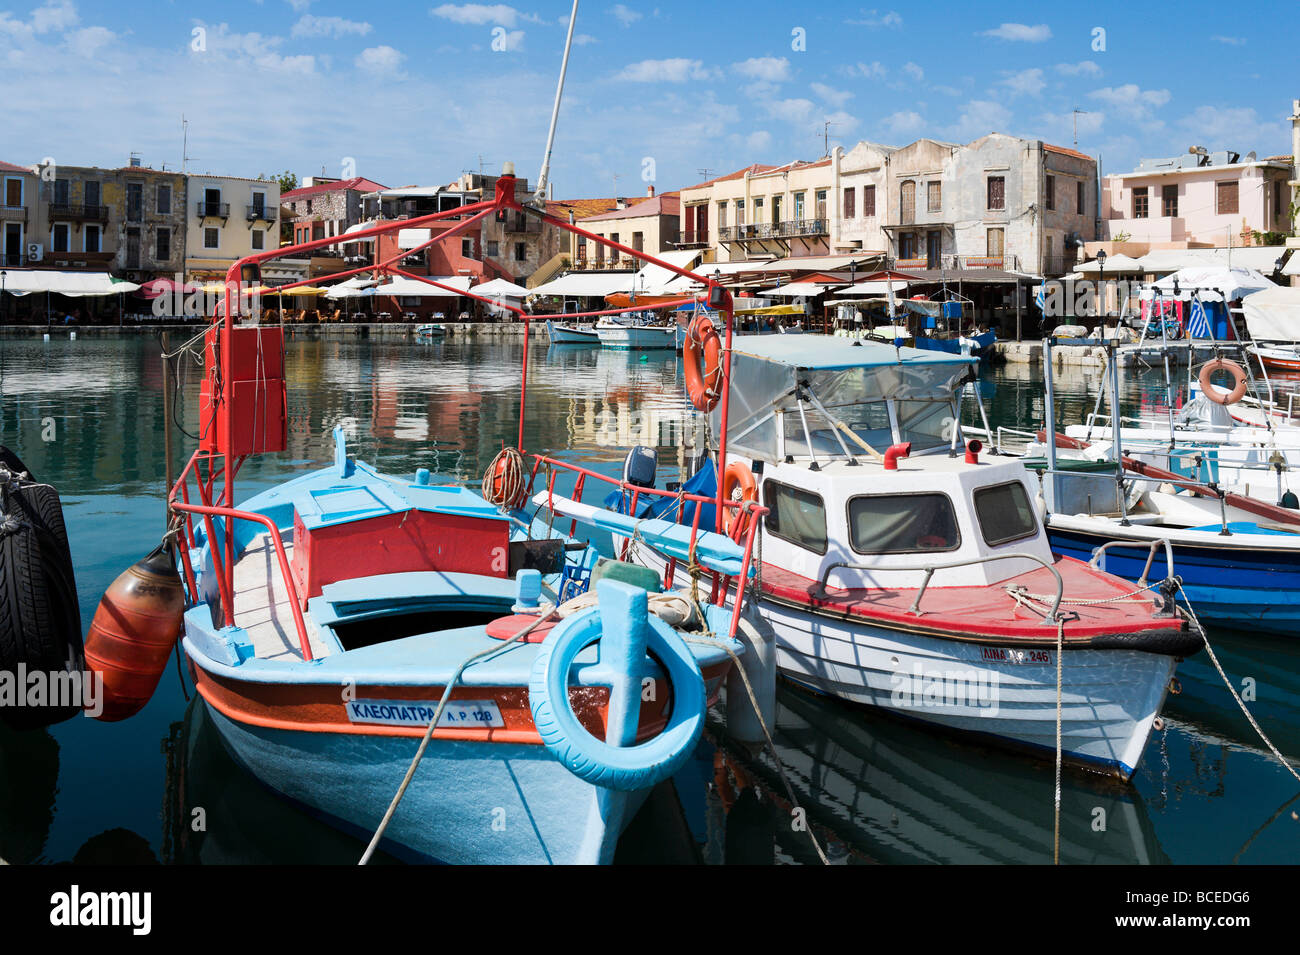 Fishing Boats in the Old Venetian Harbour, Rethymnon, Crete, Greece - Stock Image